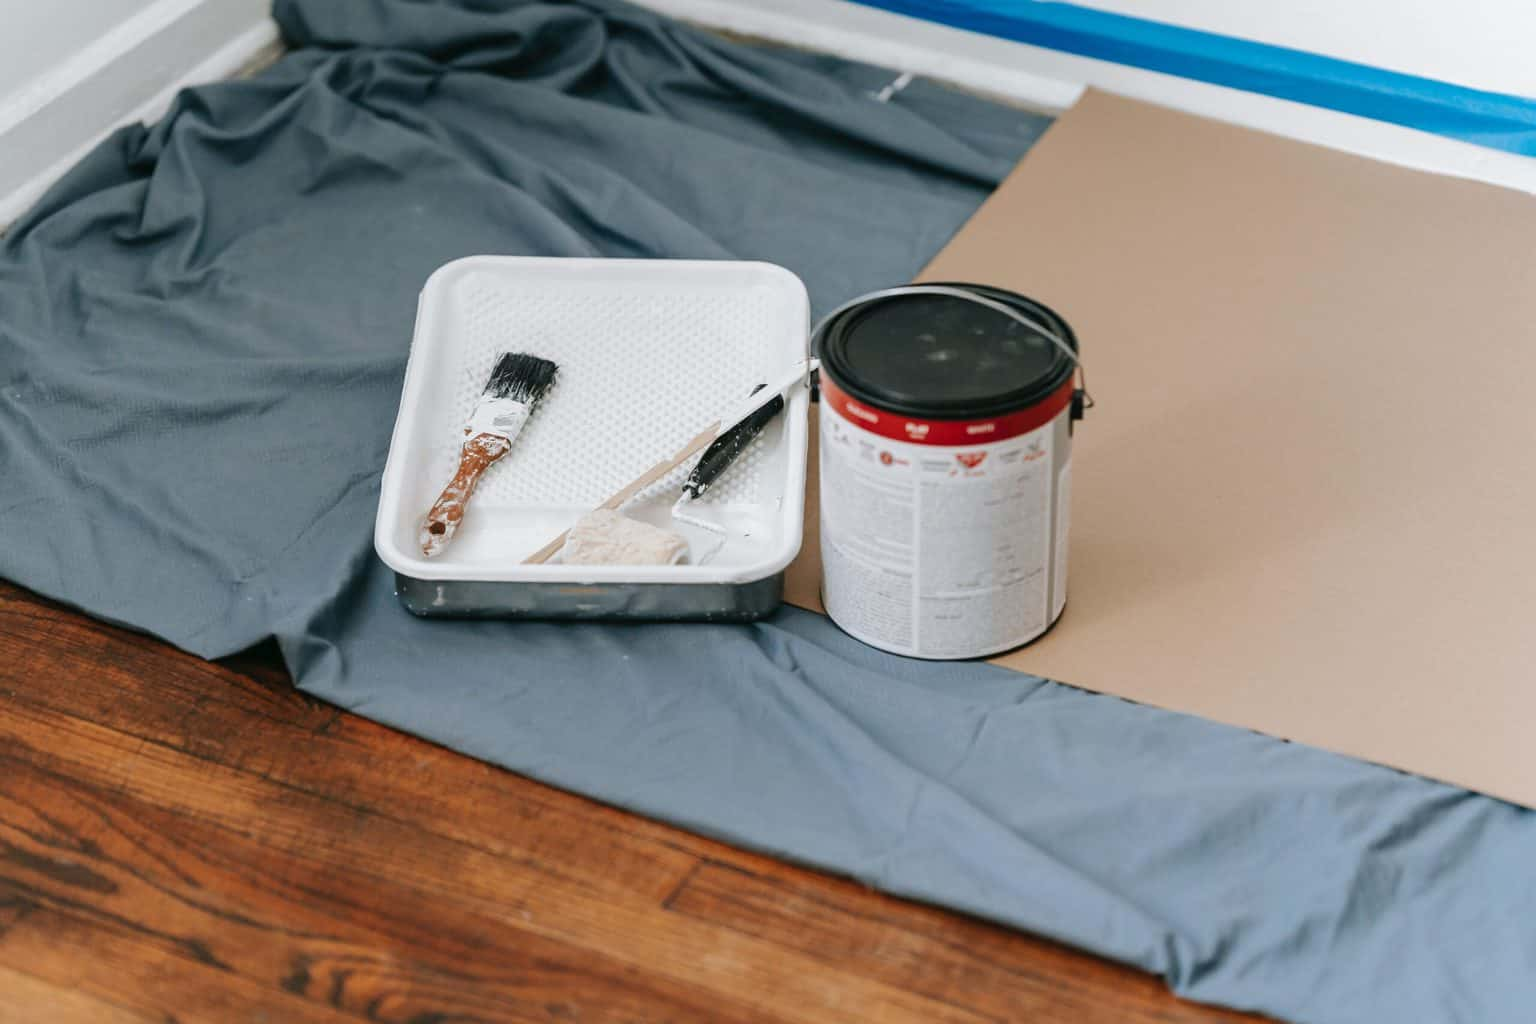 A paint can and paint brushes